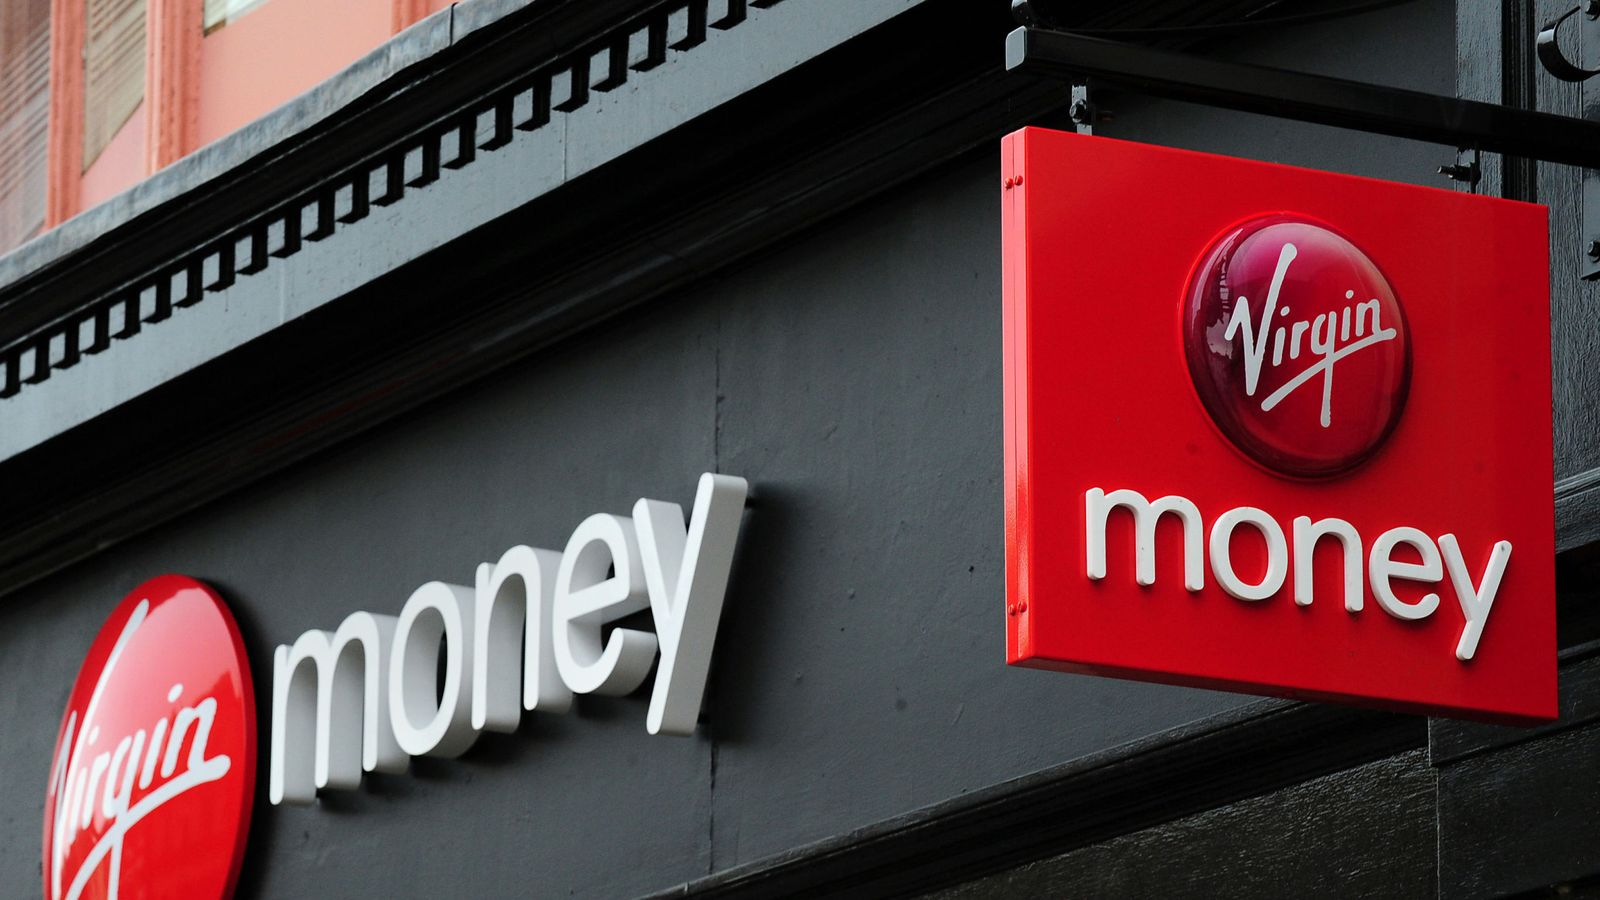 A Virgin Money branch (November 2012)